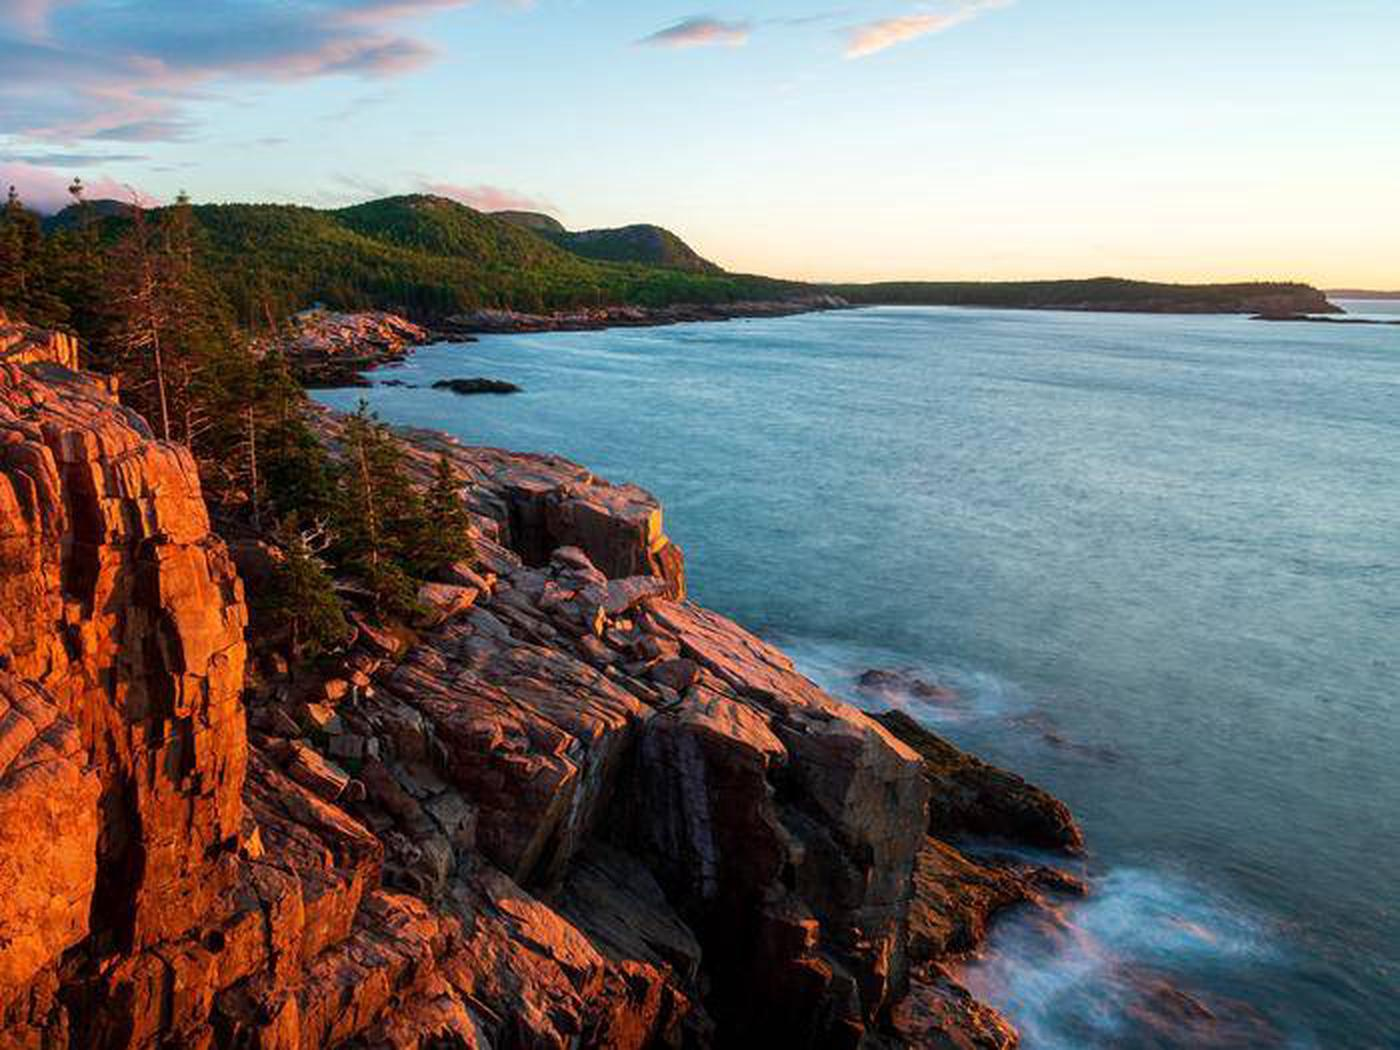 High, rocky coastline at sunrise with green mountains in distance and vast ocean belowSunrise at Otter Cliffs